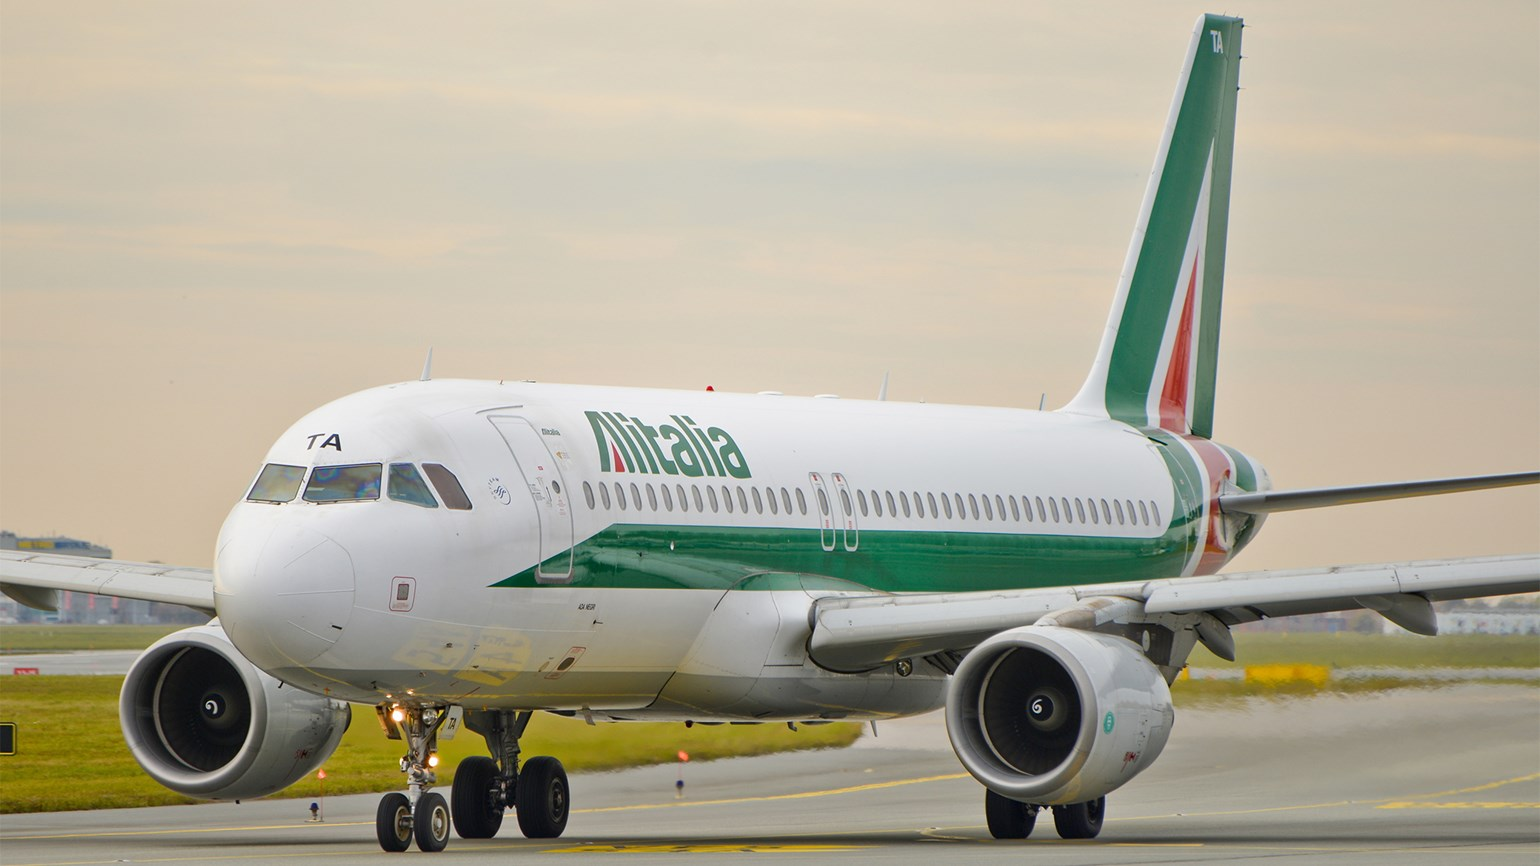 Italy could take minority stake in Alitalia